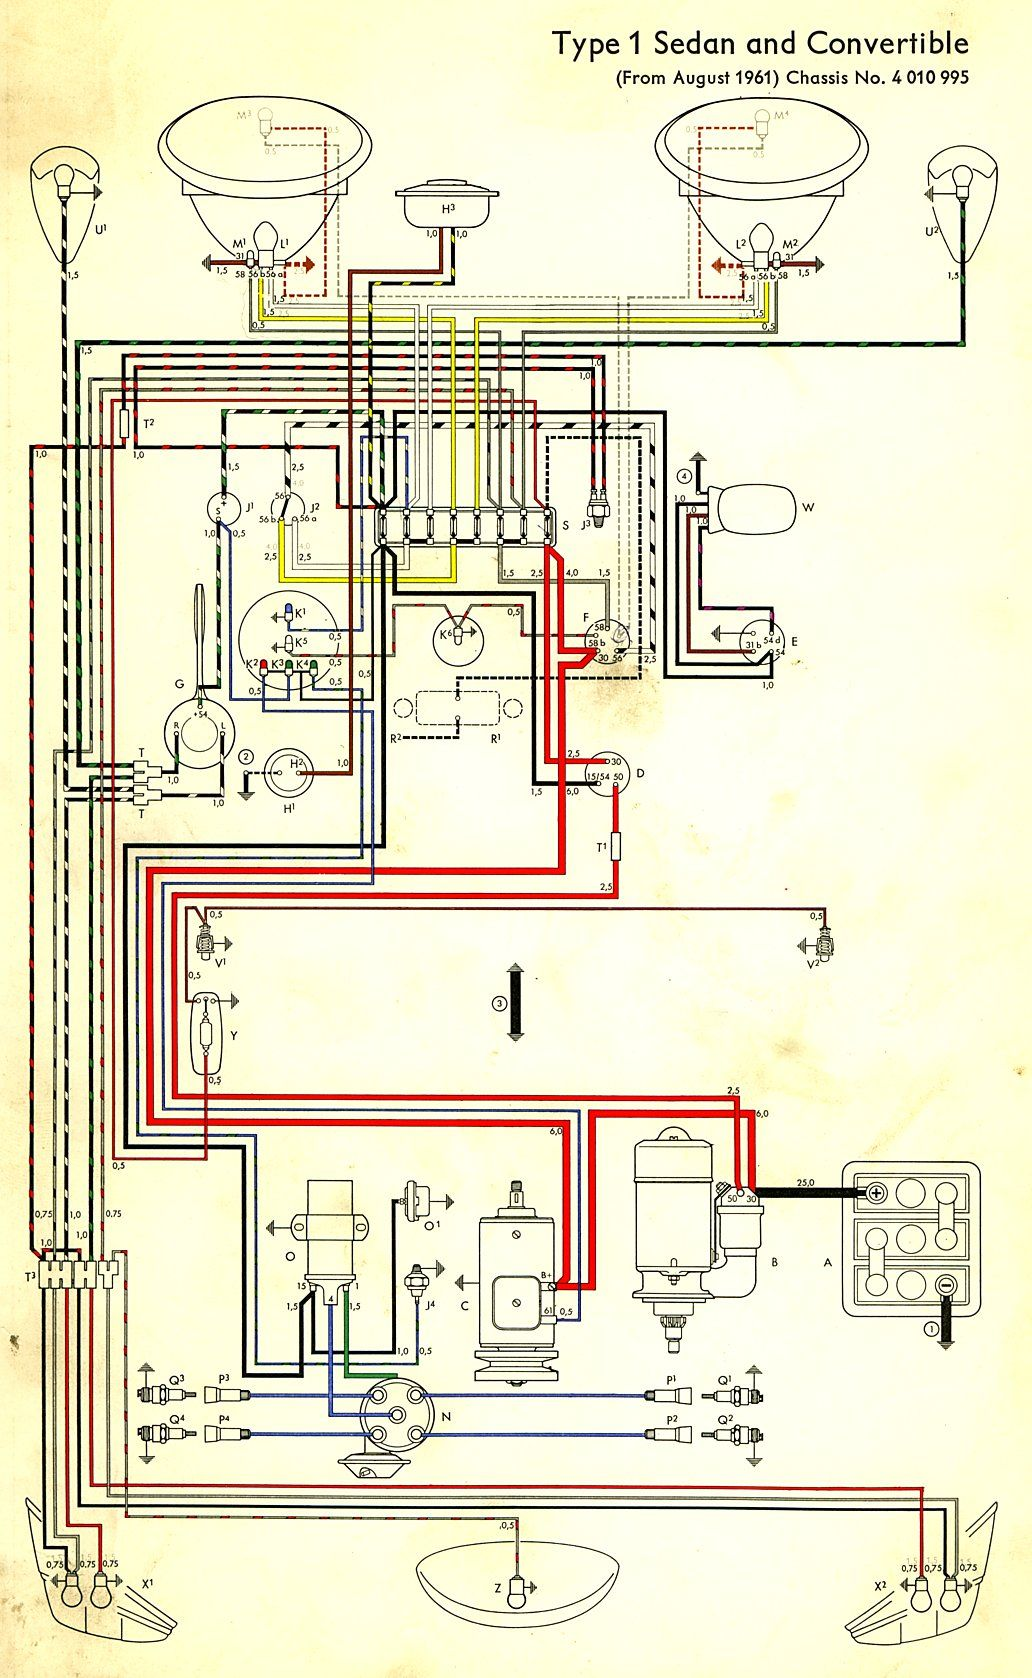 wiring diagram in color 1964 vw bug, beetle, convertible the samba colored wiring diagram vw type 3 wiring diagram in color 1964 vw bug, beetle, convertible the samba